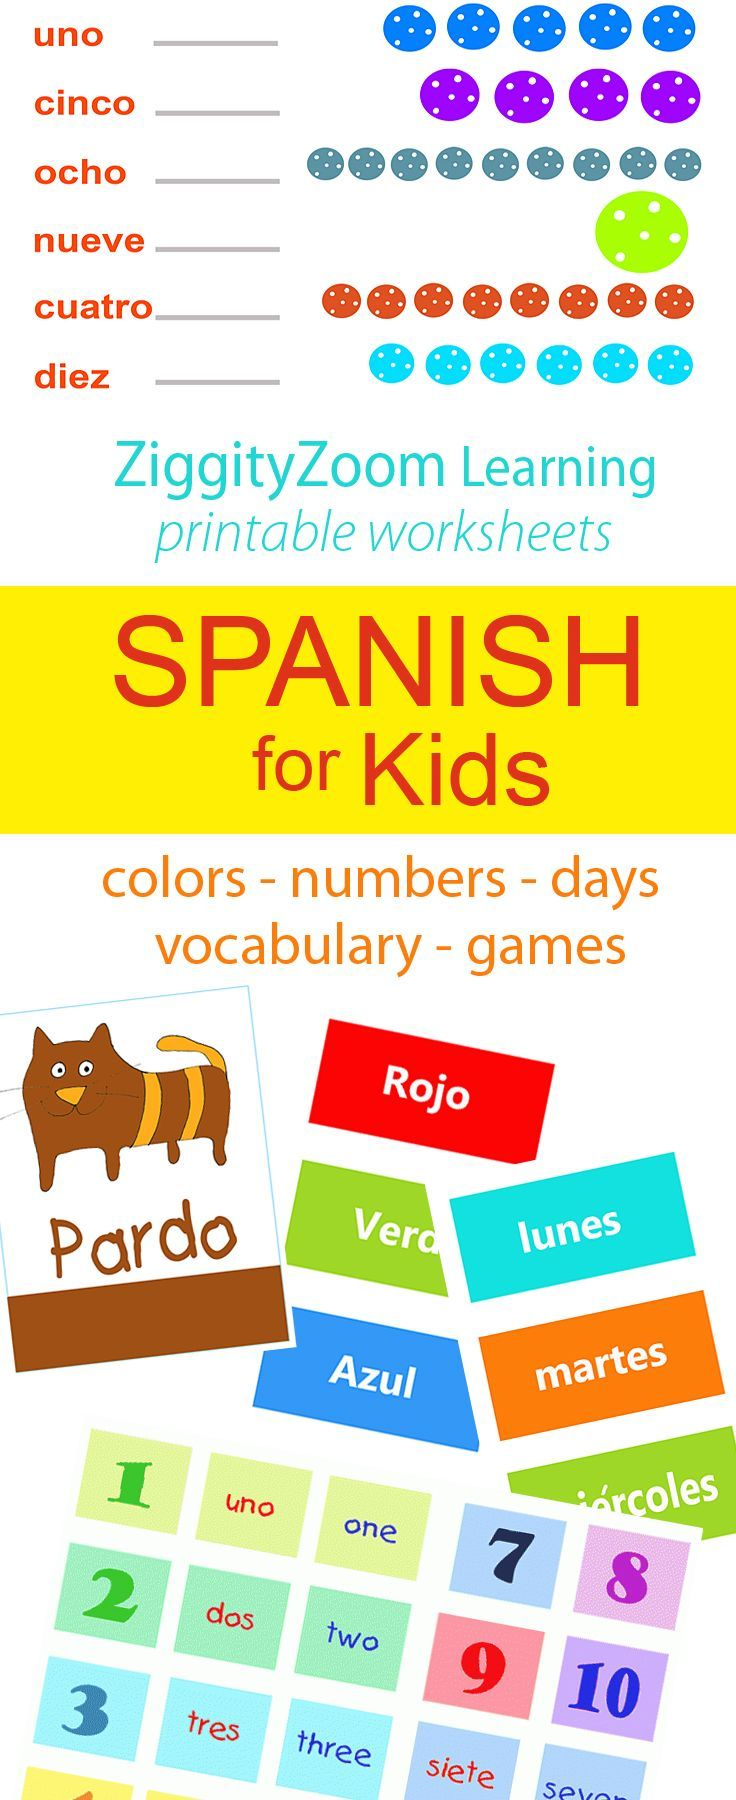 Free Printable Spanish Worksheets For Kids Lots Of Beginner Printables For Learning Spanis Spanish Lessons For Kids Learning Spanish Learning Spanish For Kids